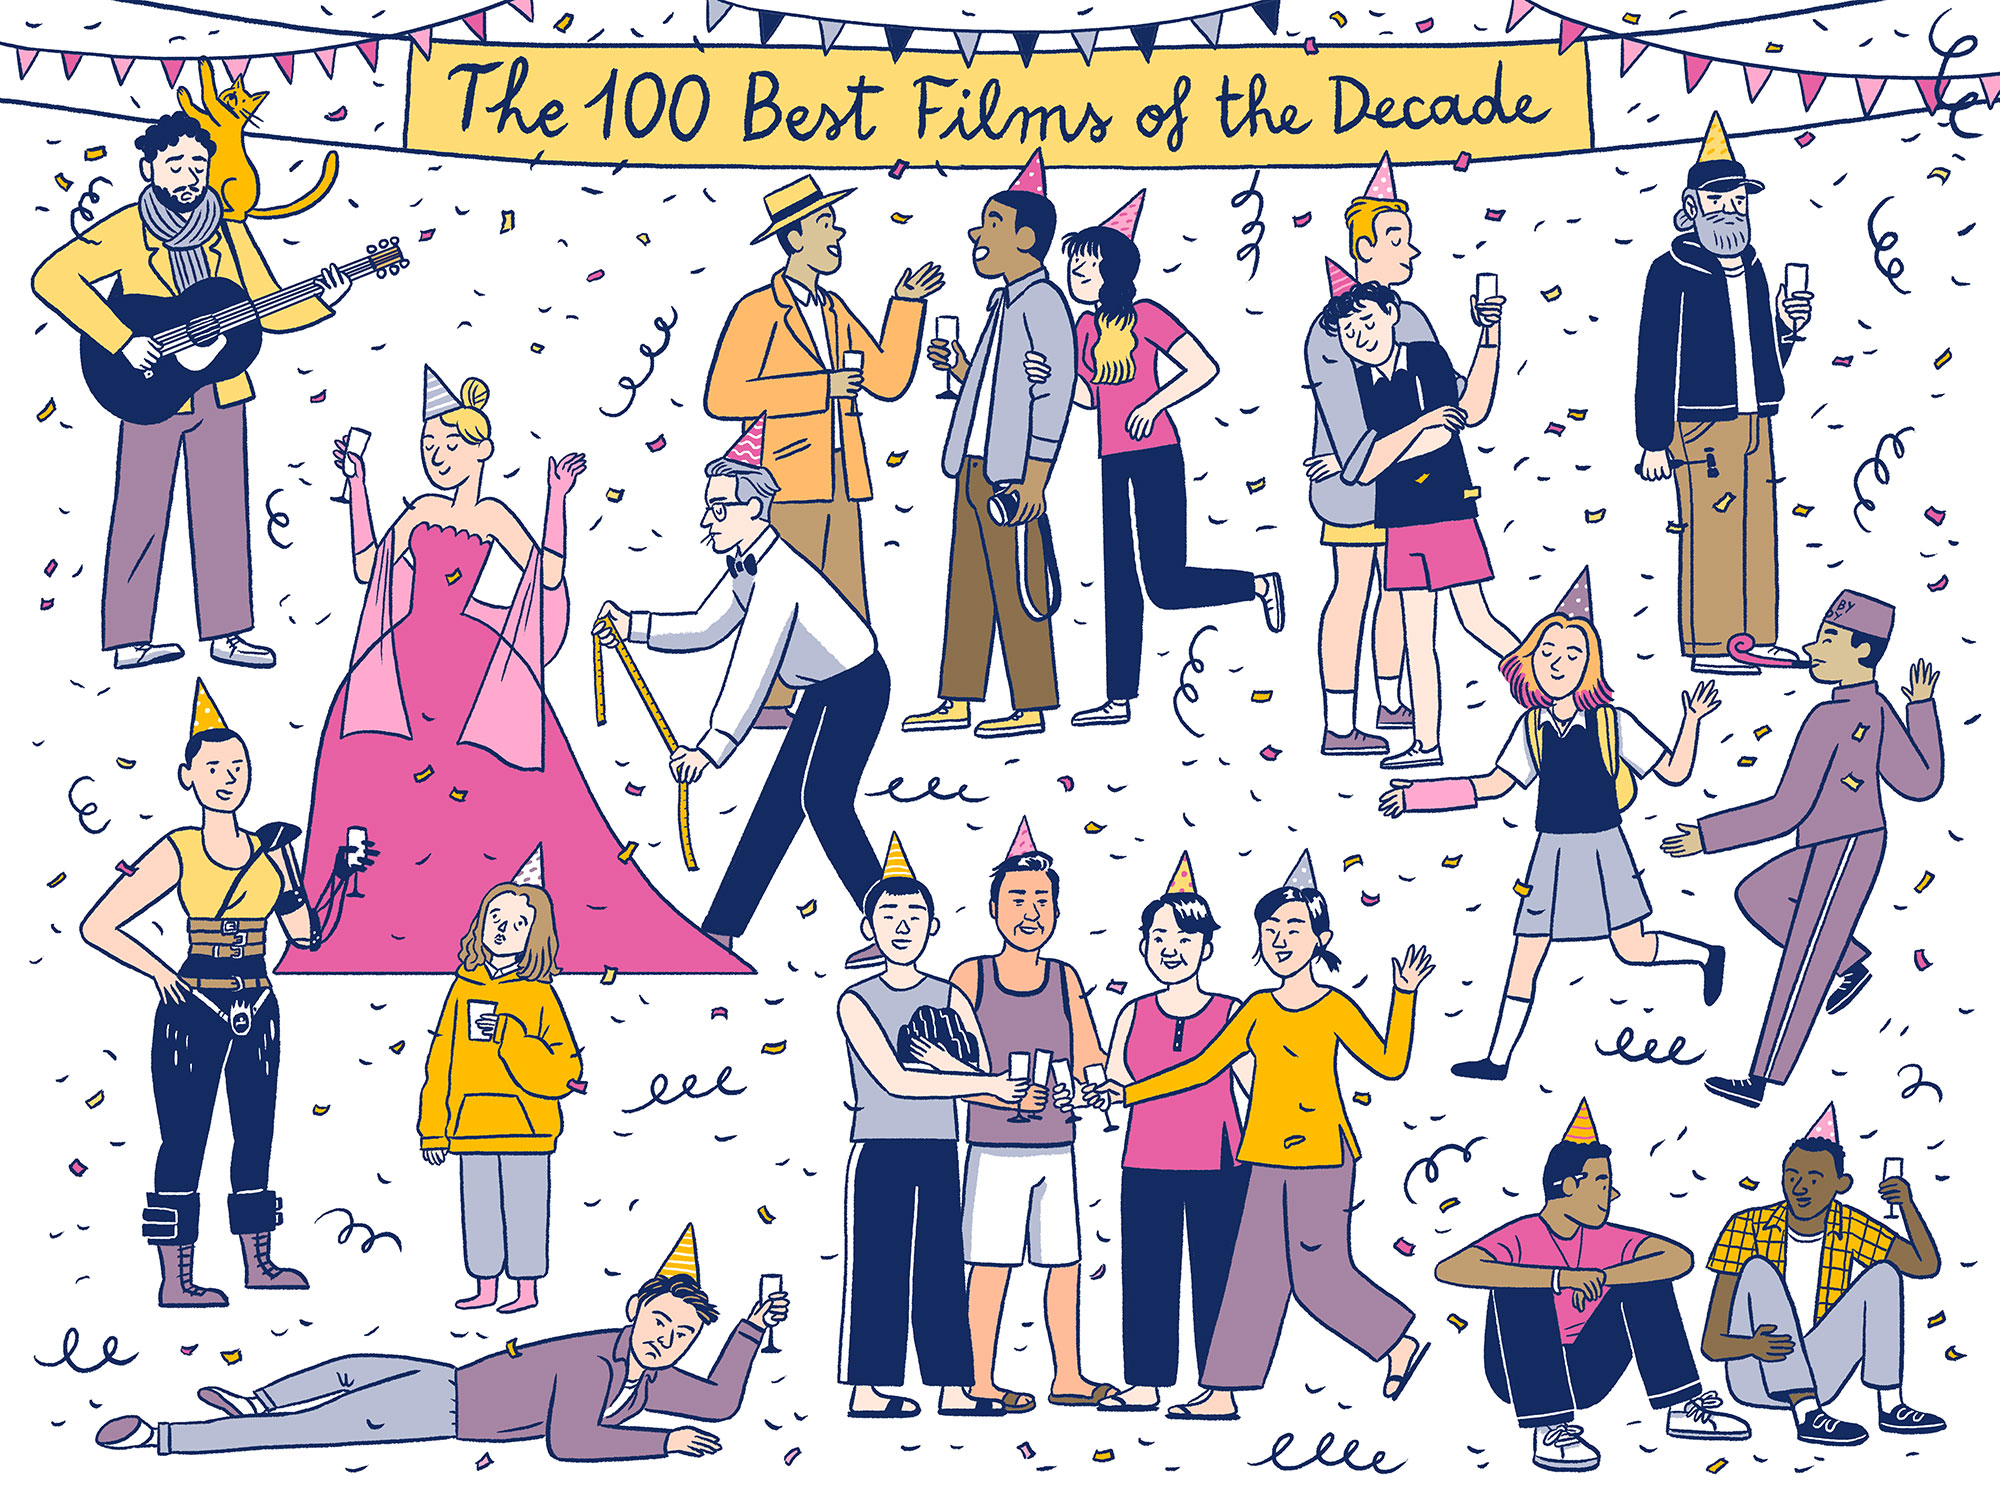 The 100 best films of the decade: 2010-2019